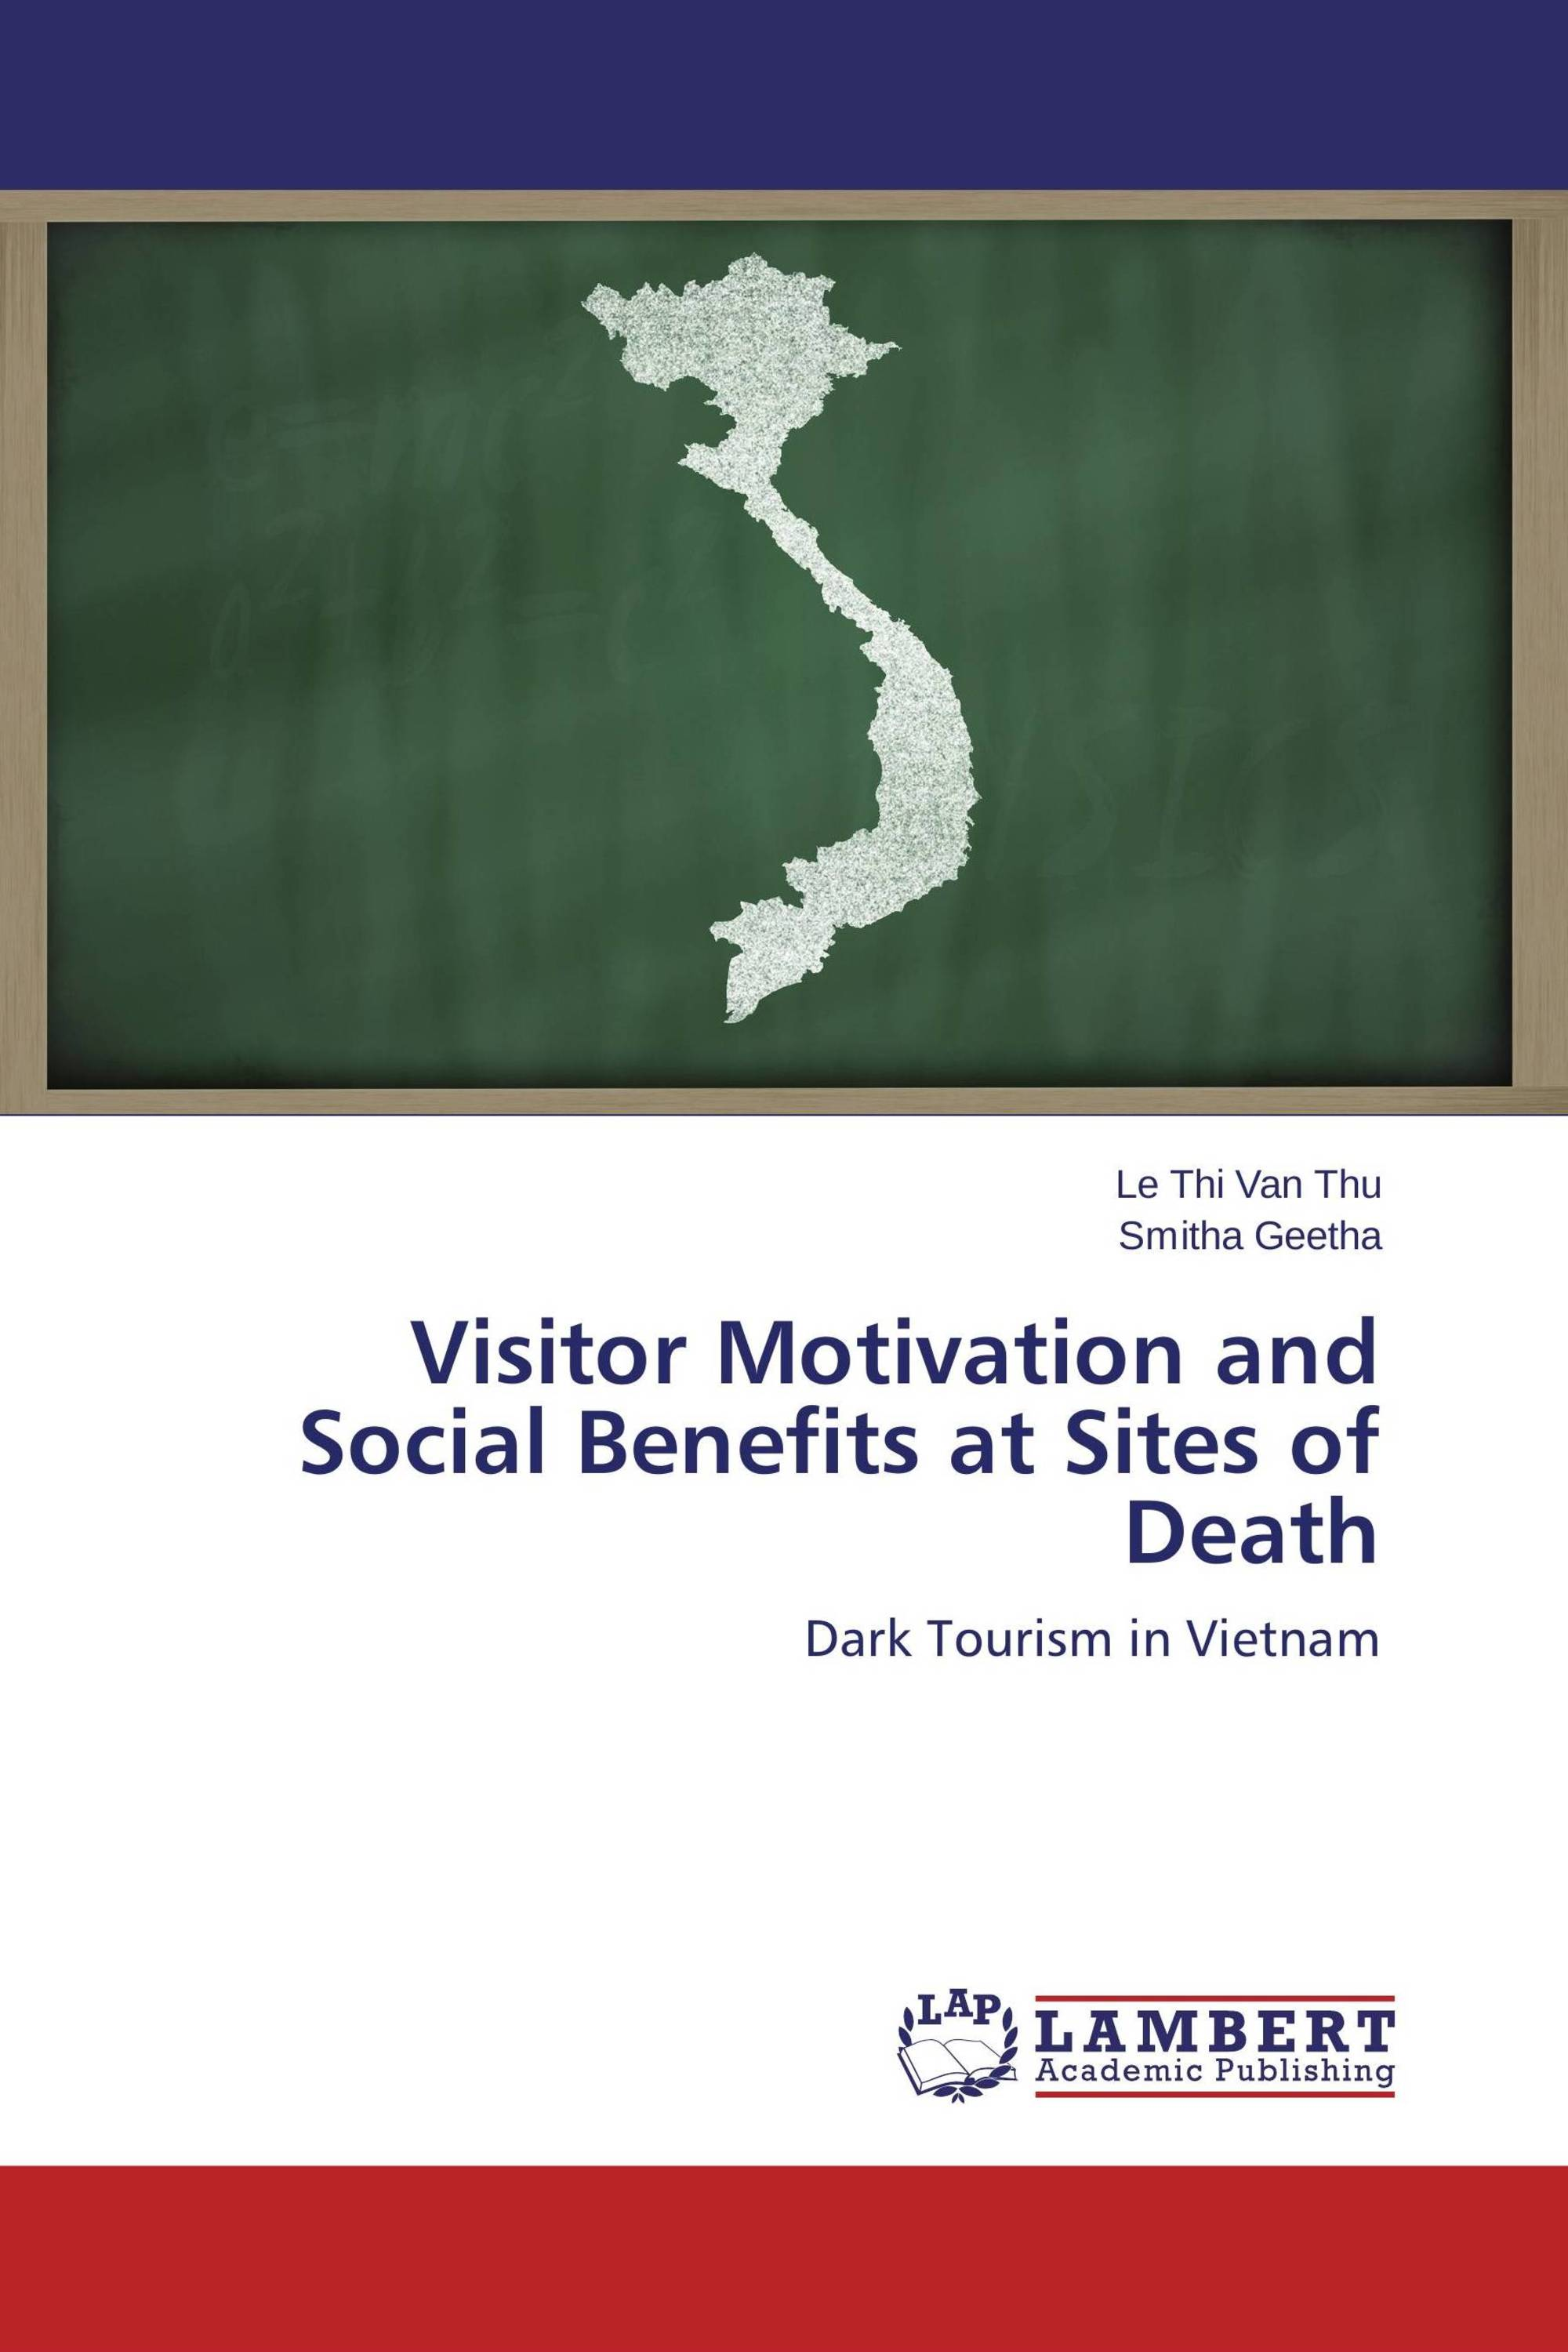 motivation factors in dark tourism Dark tourism motivations : an investigation into the motivations of visitors to sites associated with dark tourism robinson, n 2015, dark tourism motivations : an investigation into the motivations of visitors to sites associated with dark tourism , phd thesis, university of salford.